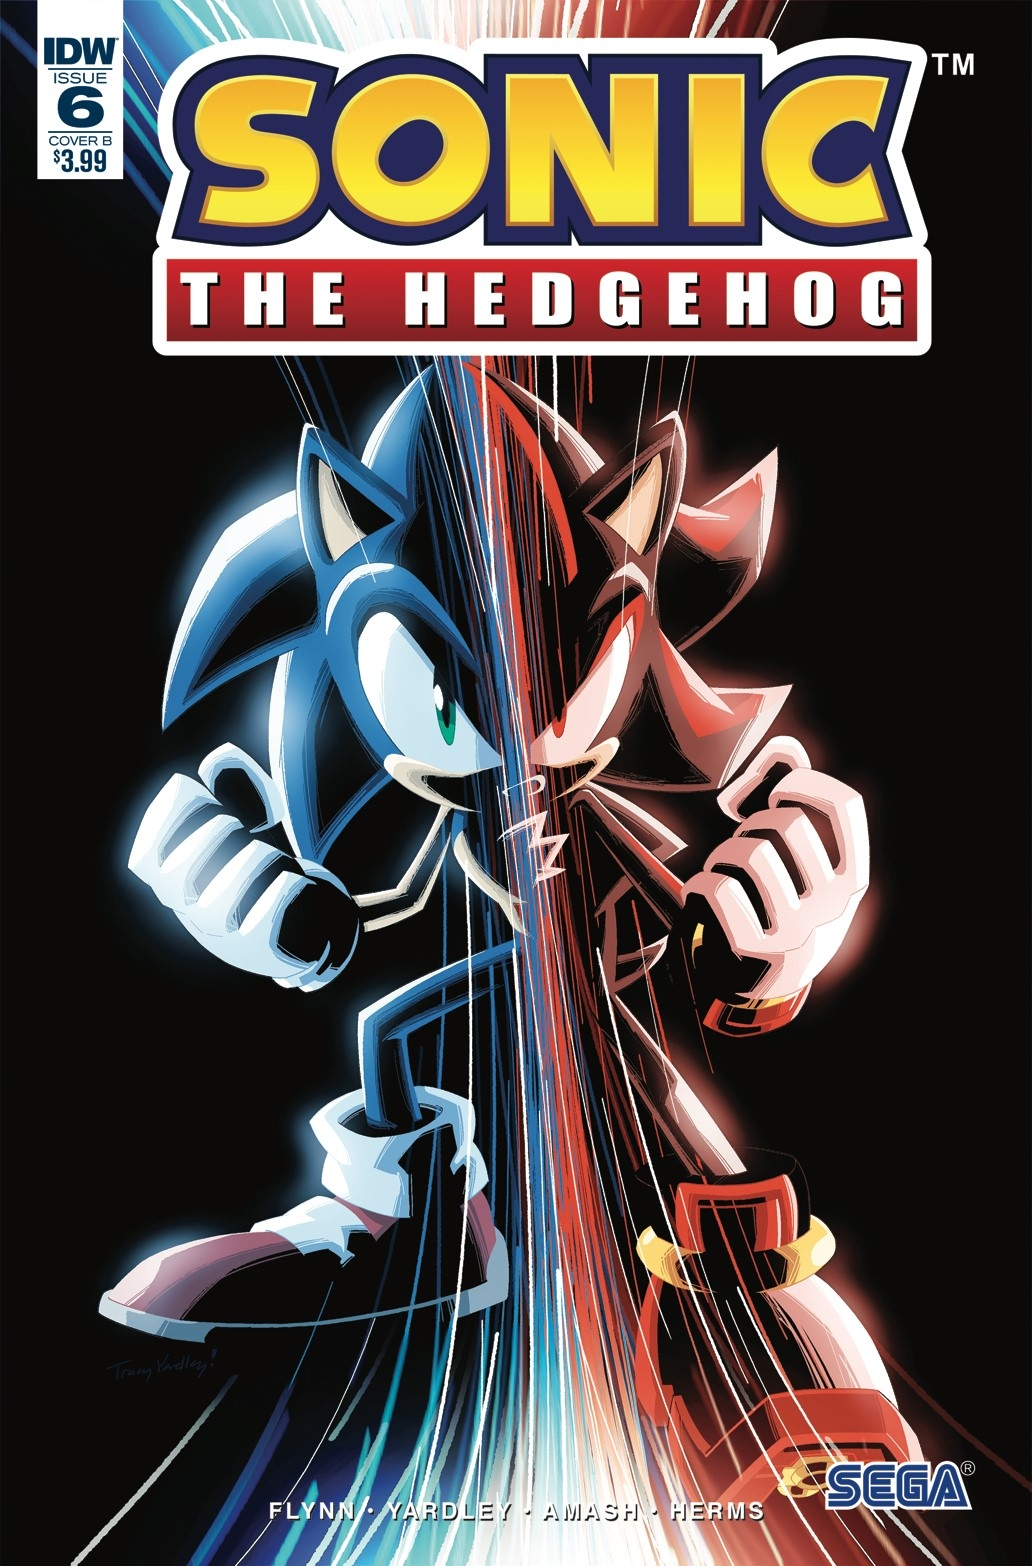 SONIC THE HEDGEHOG #6 CVR B GRAY